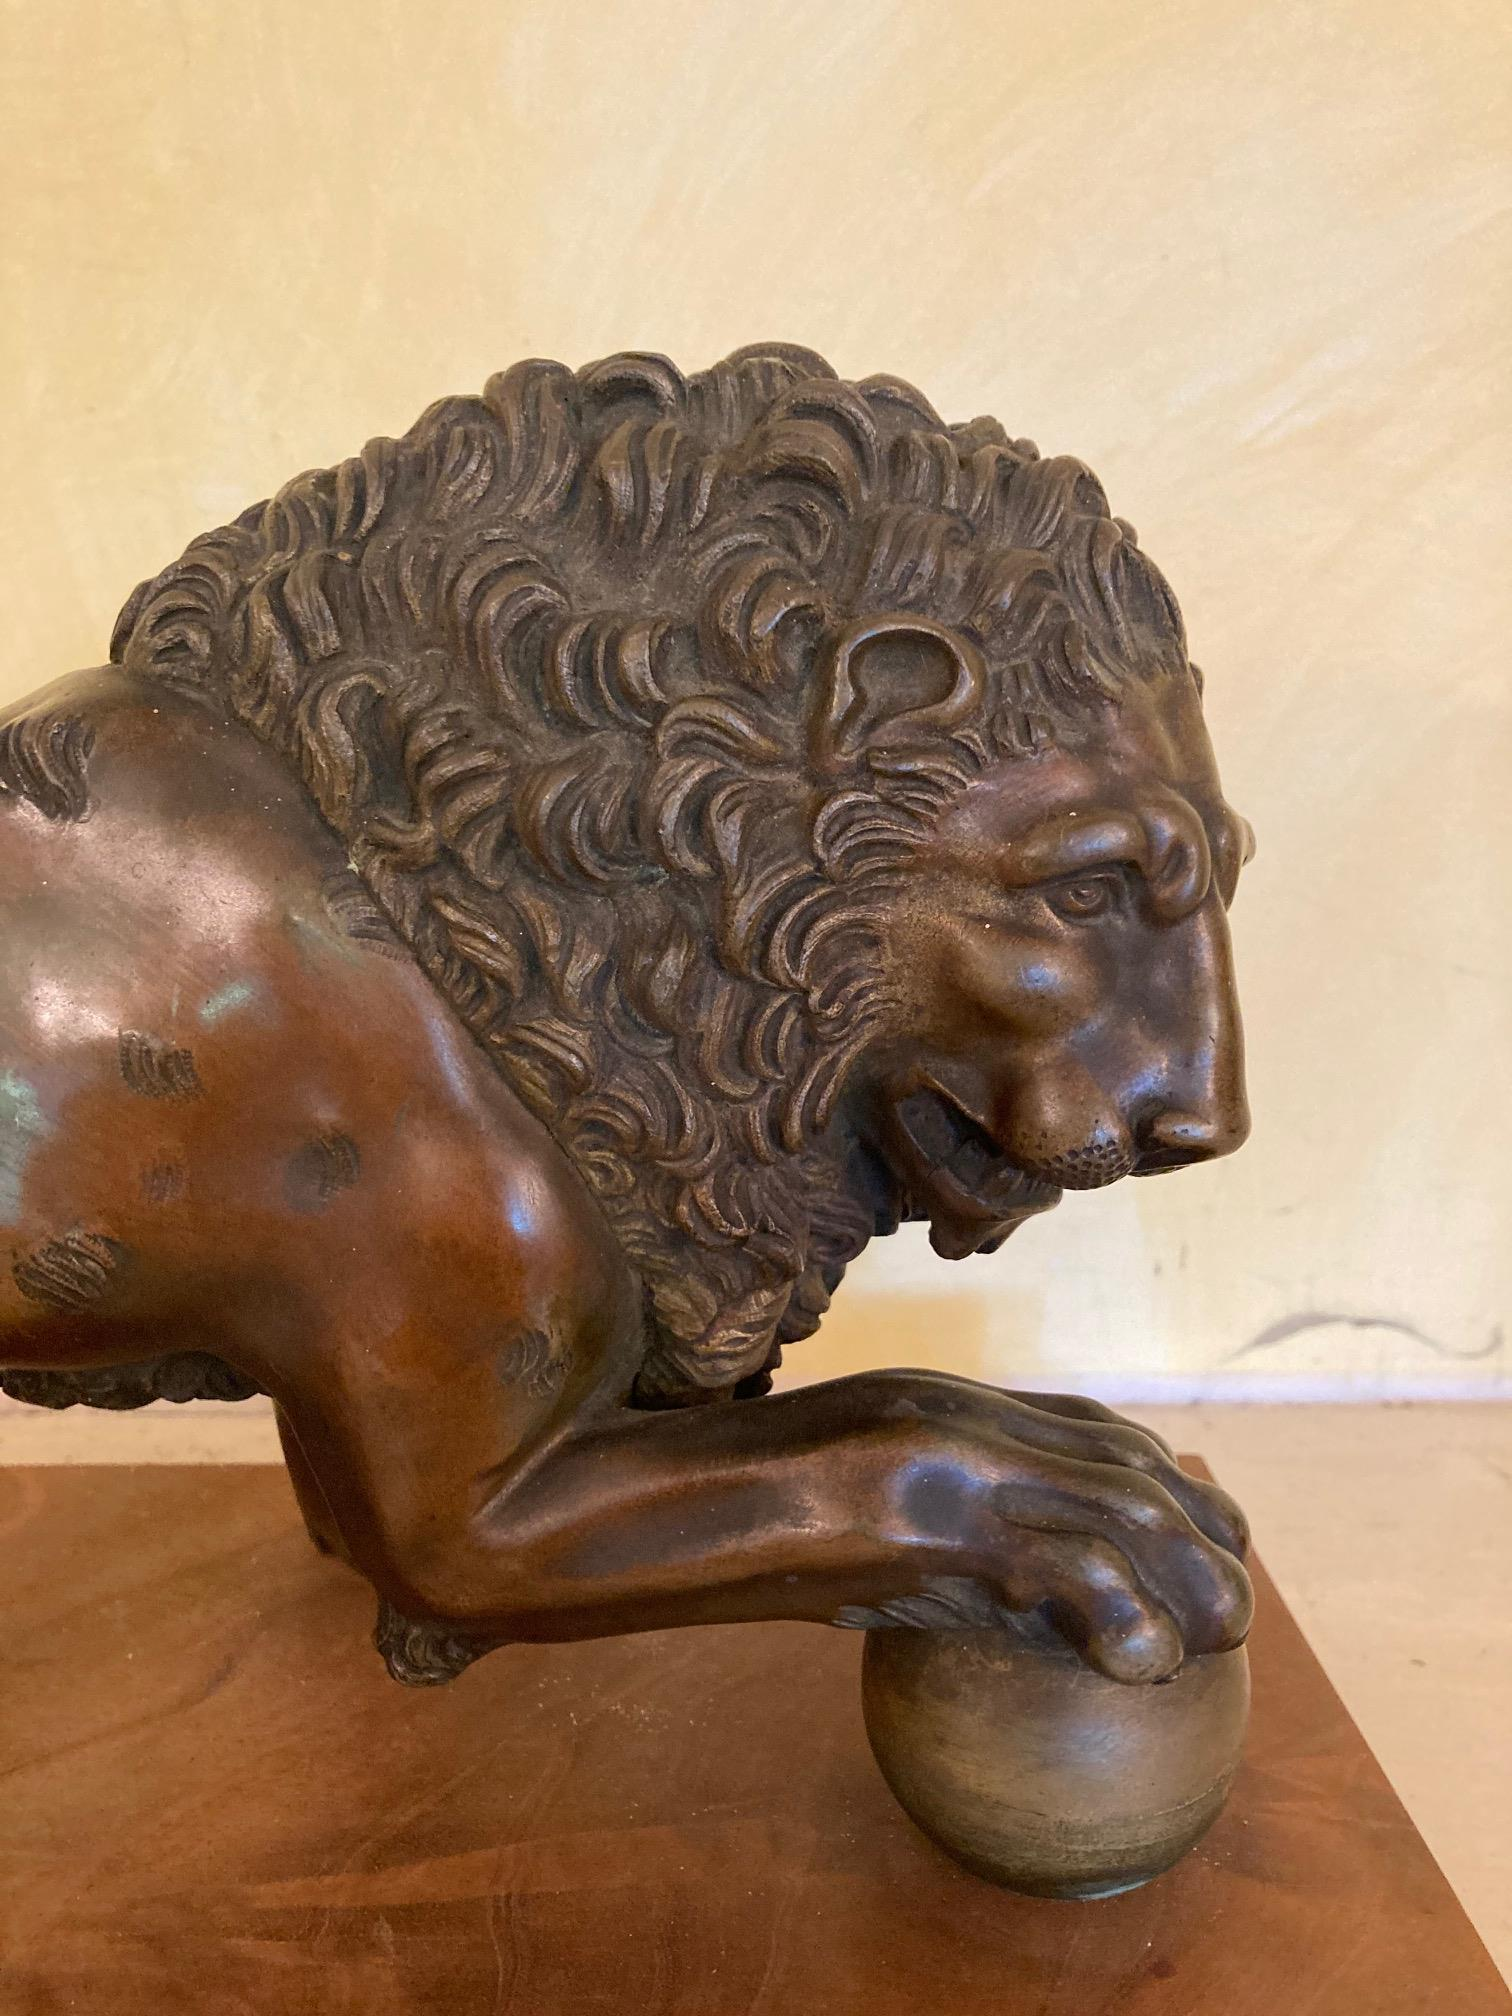 A bronze Figure of a Medici Lion, with right front paw on a sphere, on bronze and wooden base, - Image 5 of 6